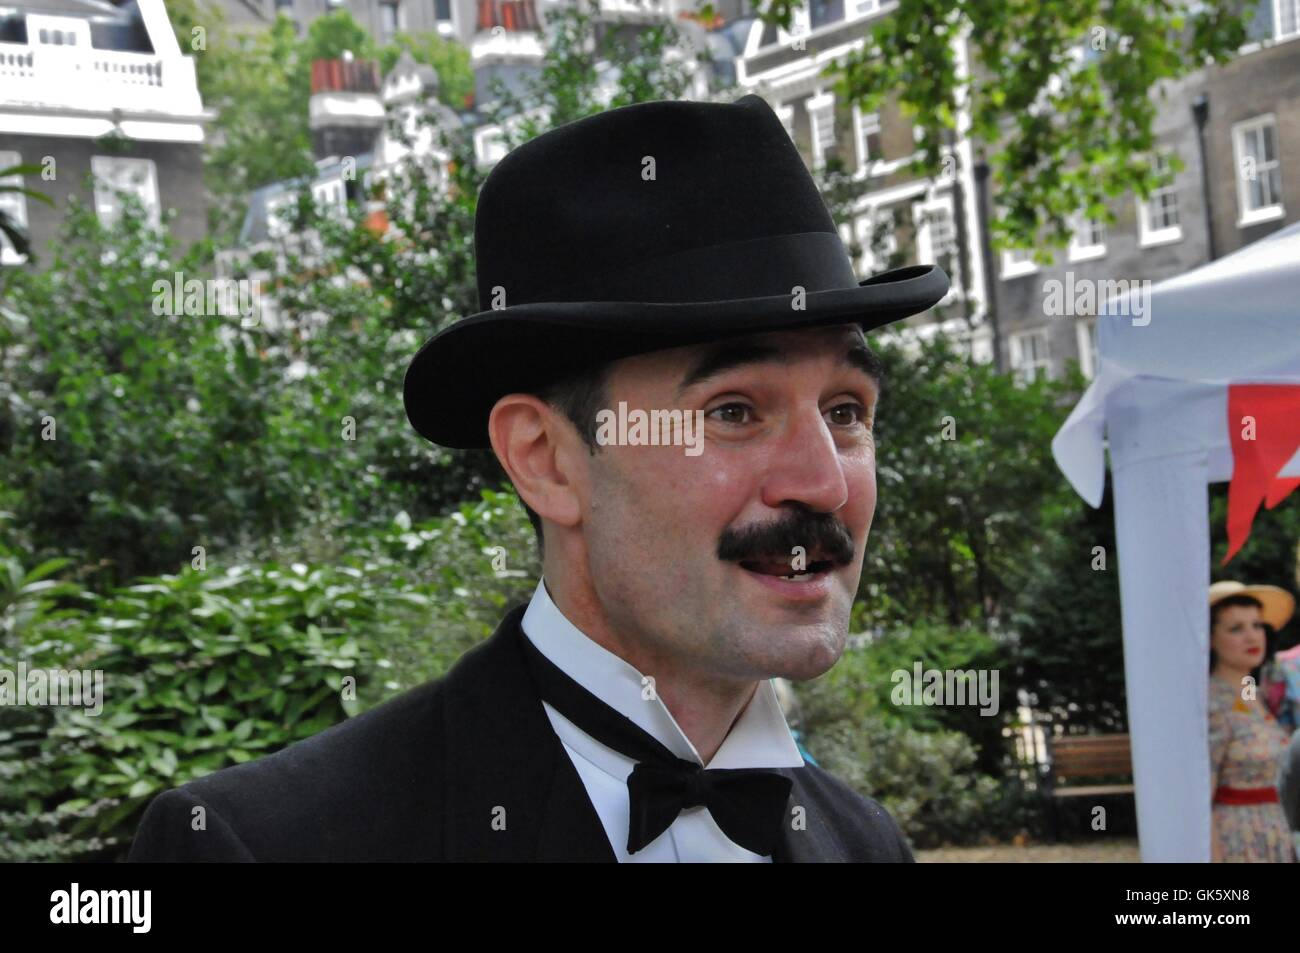 Master of Ceremonies, 2016 Chap Olympiad, Bedford Square, London. - Stock Image